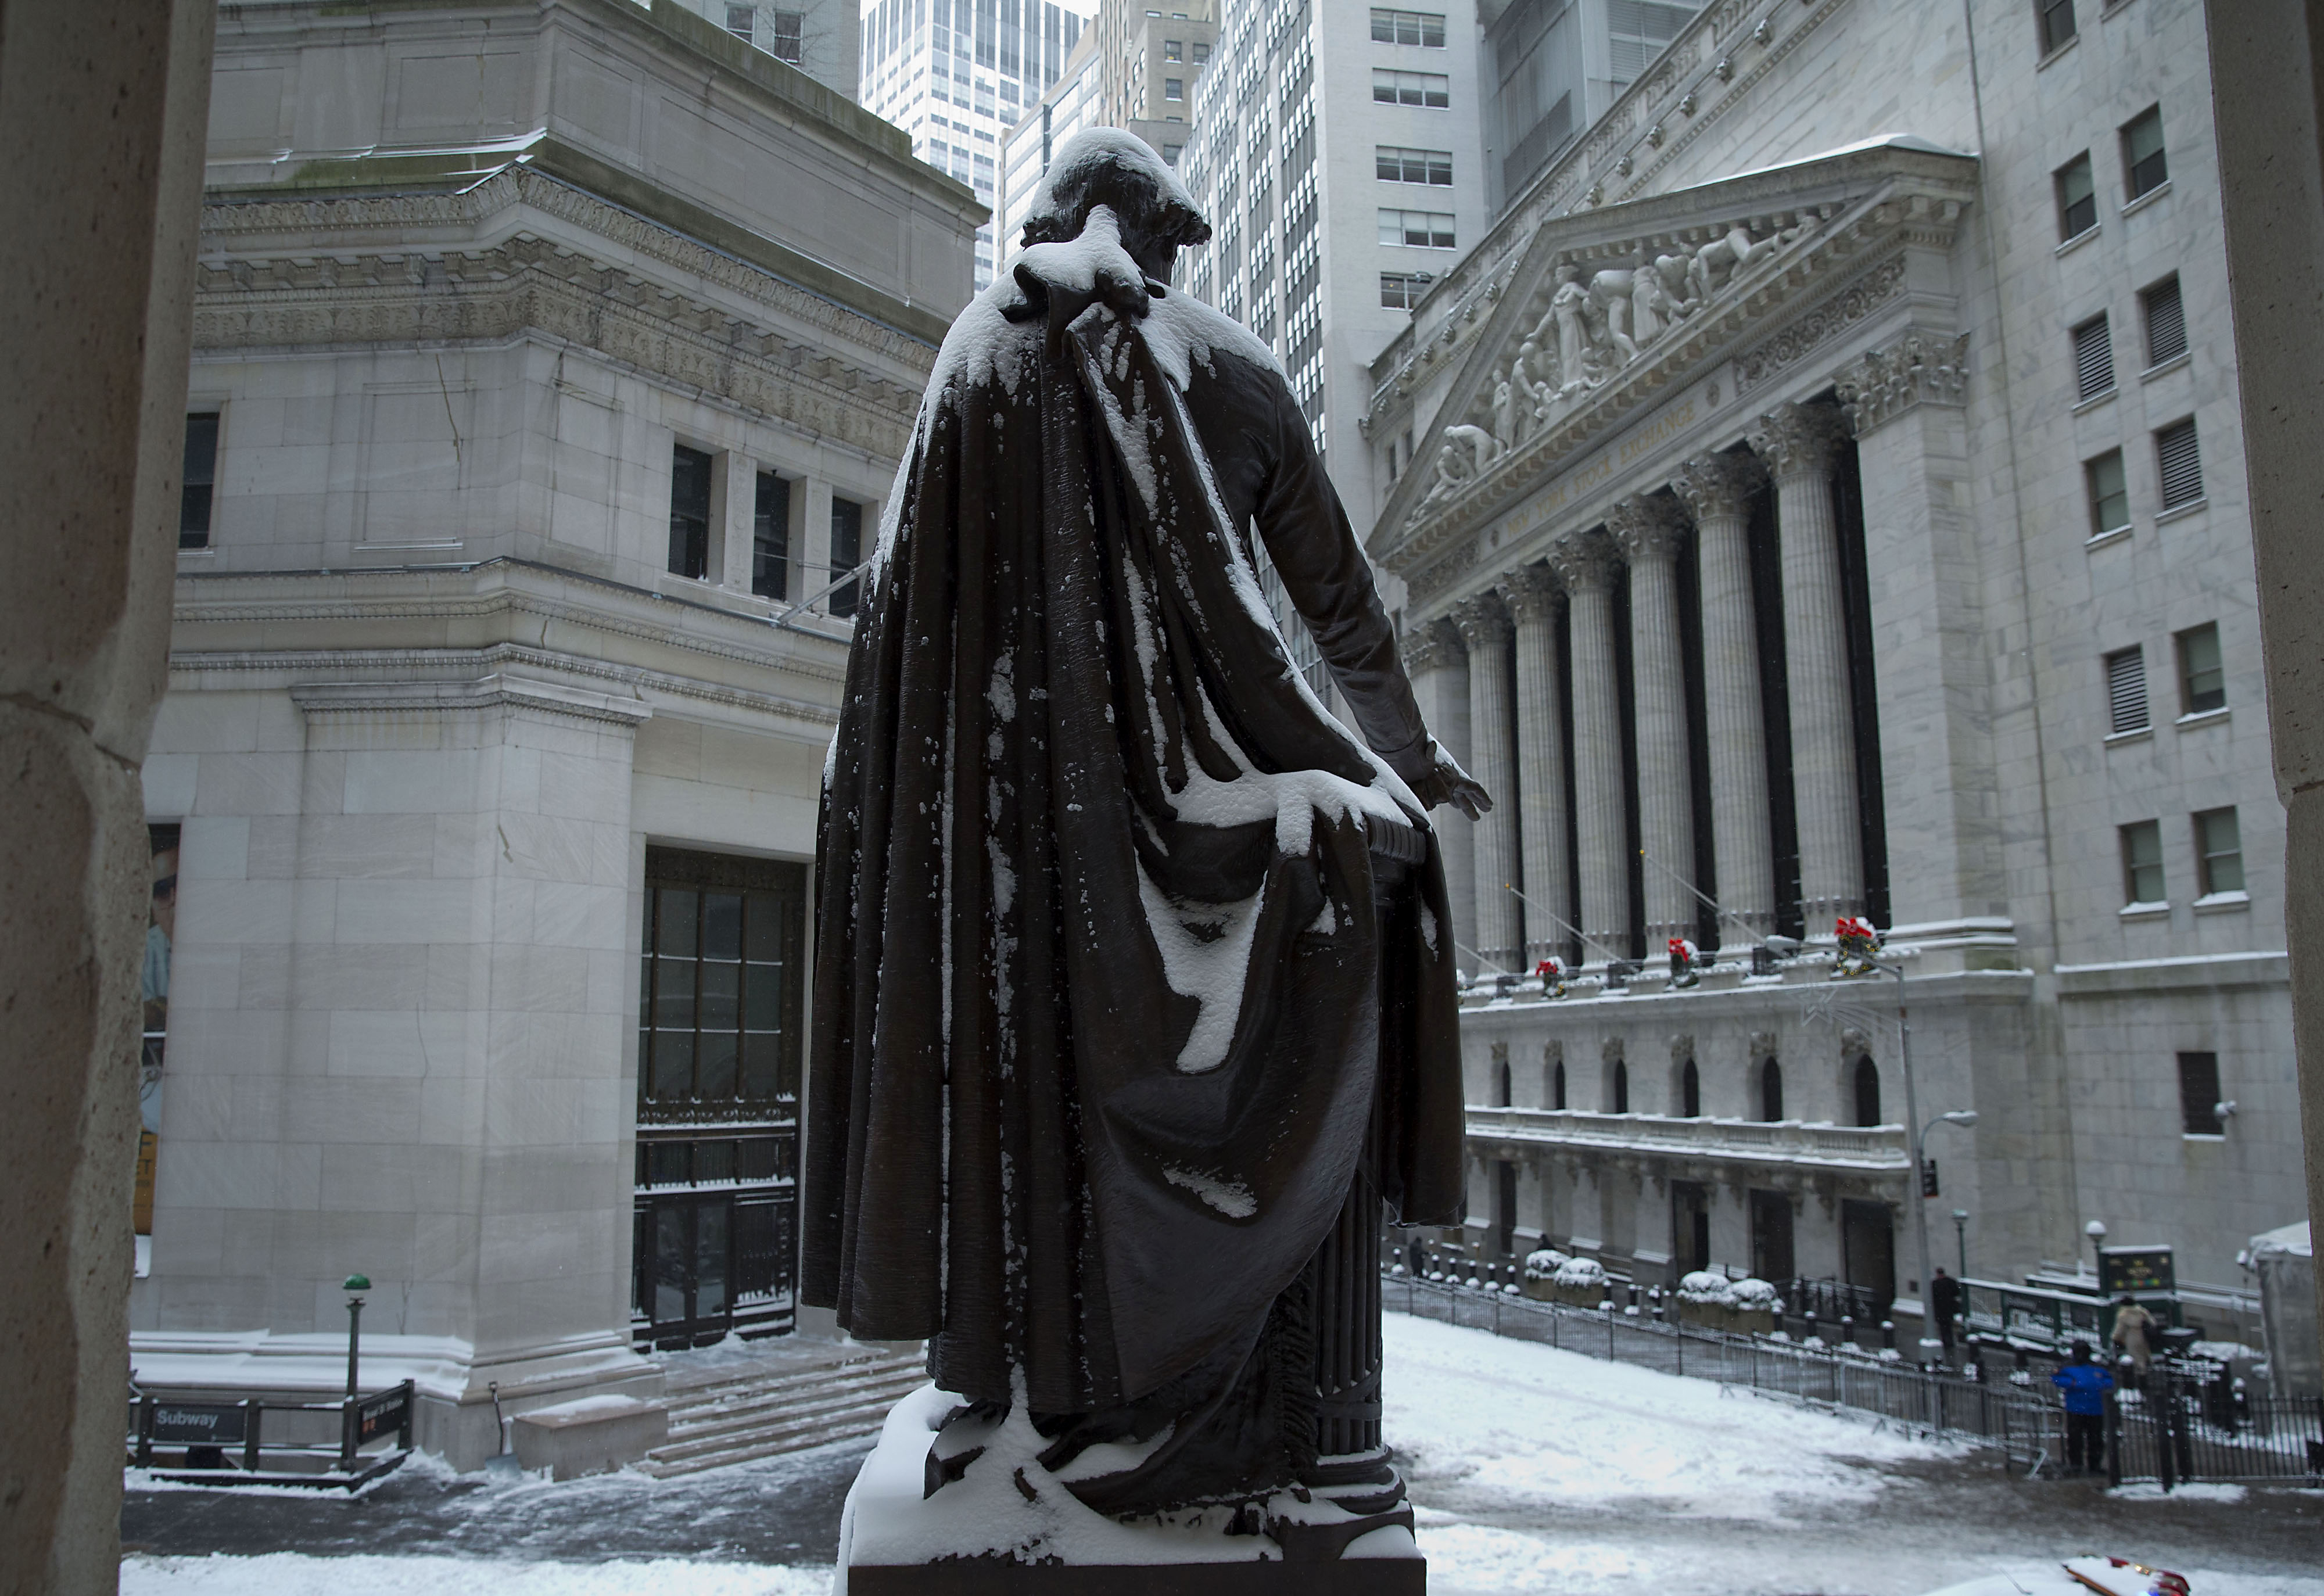 The George Washington statue stands covered in snow near the New York Stock Exchange